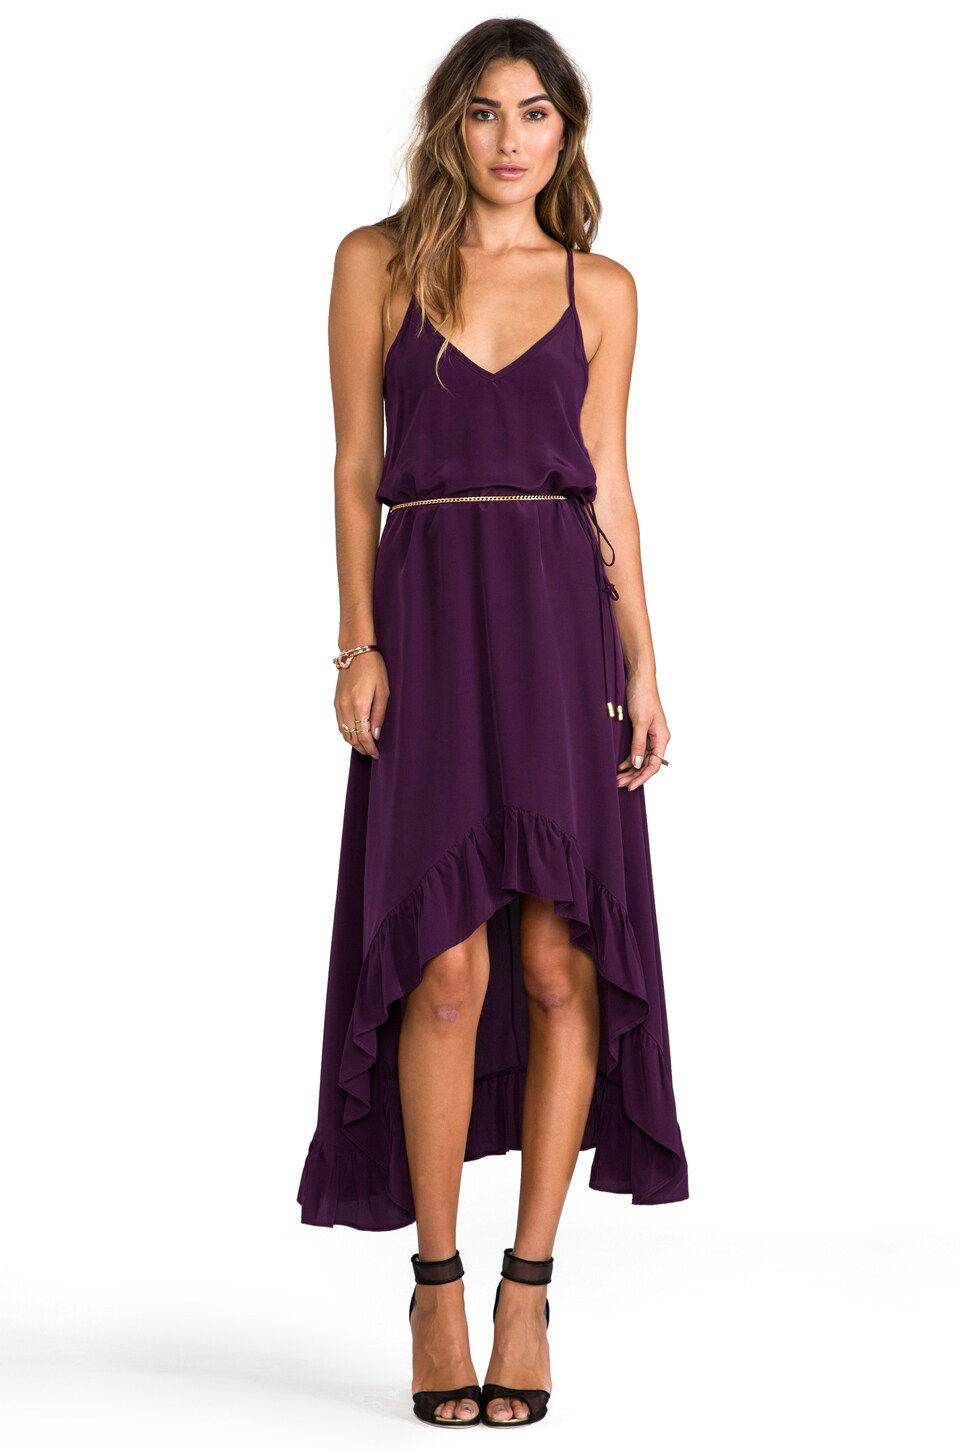 Karina Grimaldi Silk Solids Romantic Maxi Dress in Plum